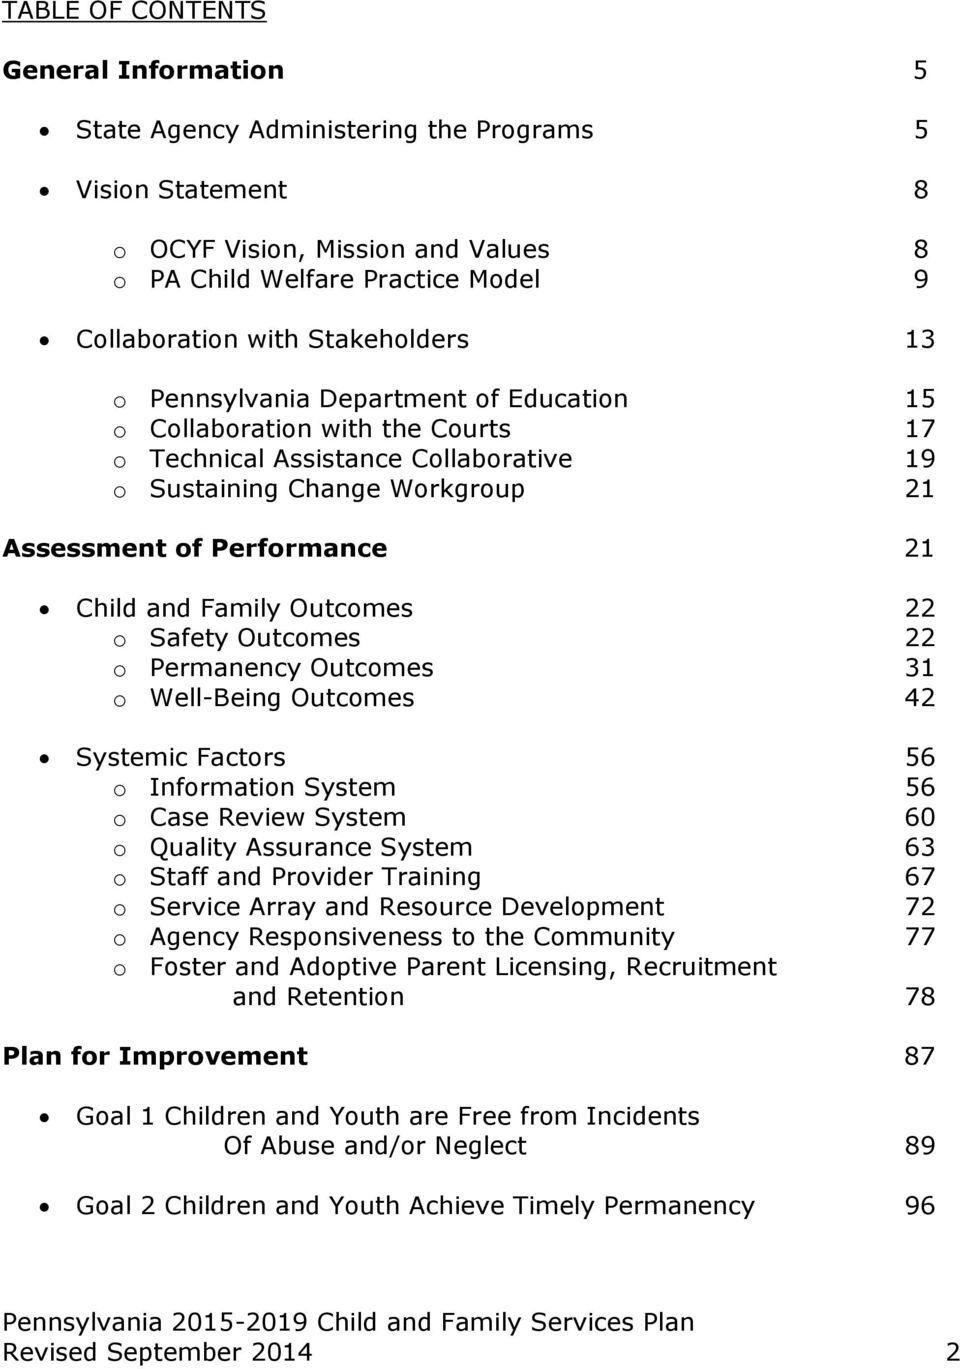 Child and Family Outcomes 22 o Safety Outcomes 22 o Permanency Outcomes 31 o Well-Being Outcomes 42 Systemic Factors 56 o Information System 56 o Case Review System 60 o Quality Assurance System 63 o